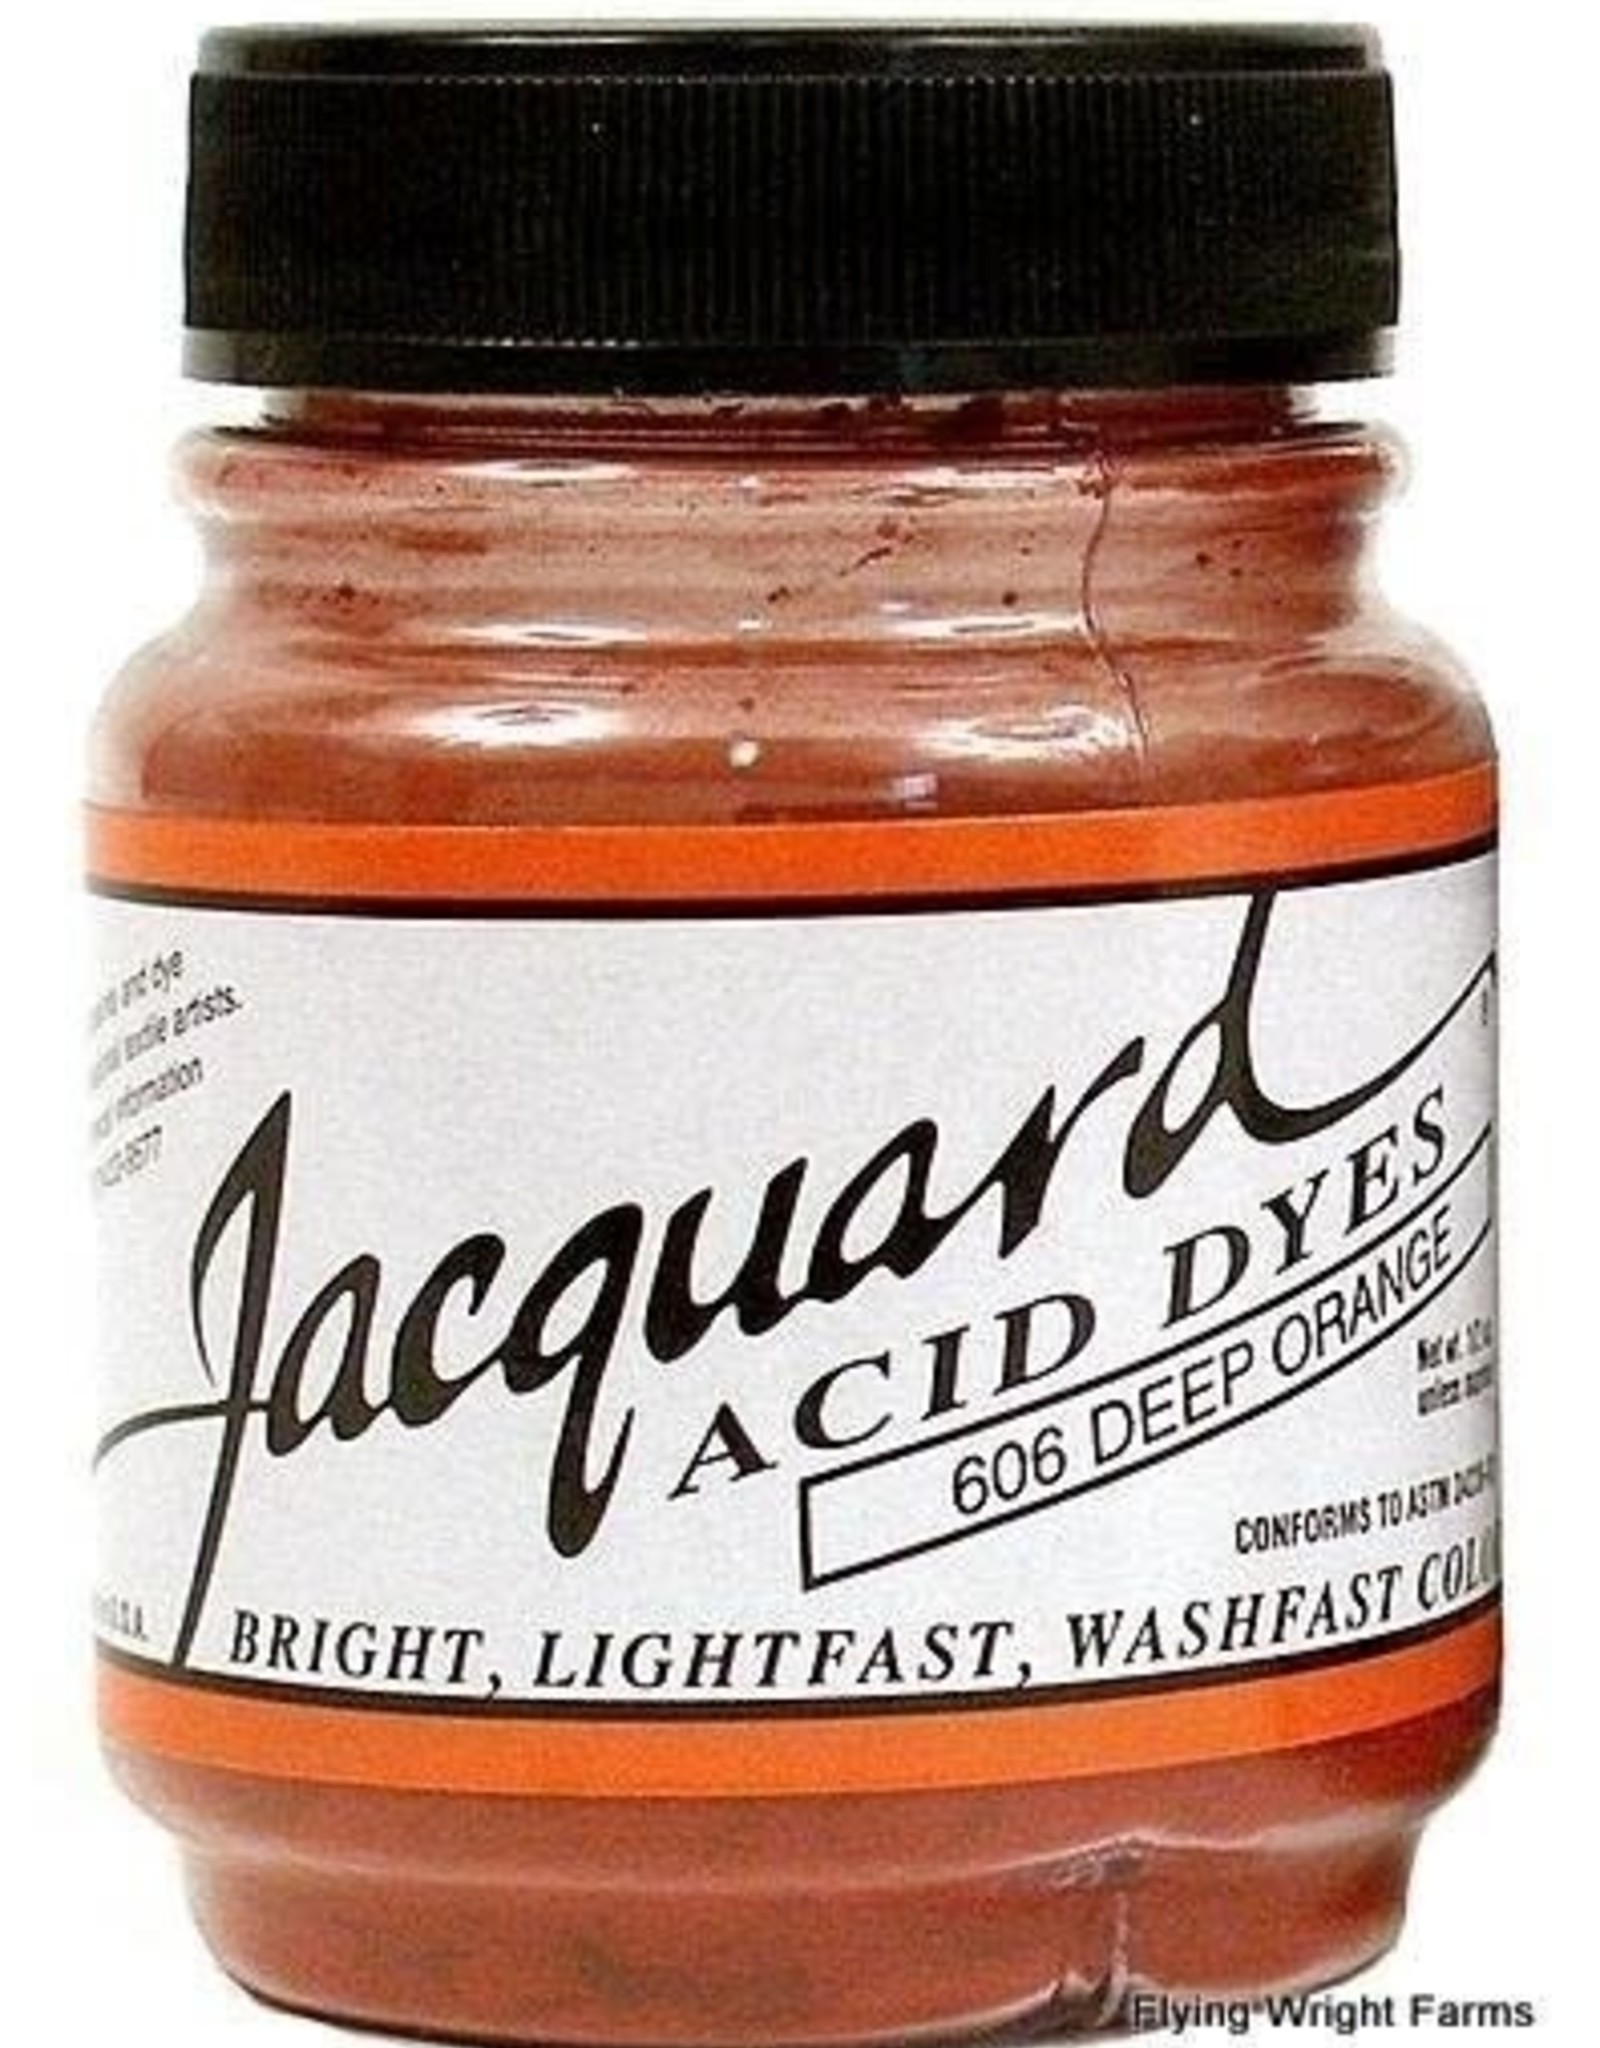 Jacquard Jacquard Acid Dye Deep Orange